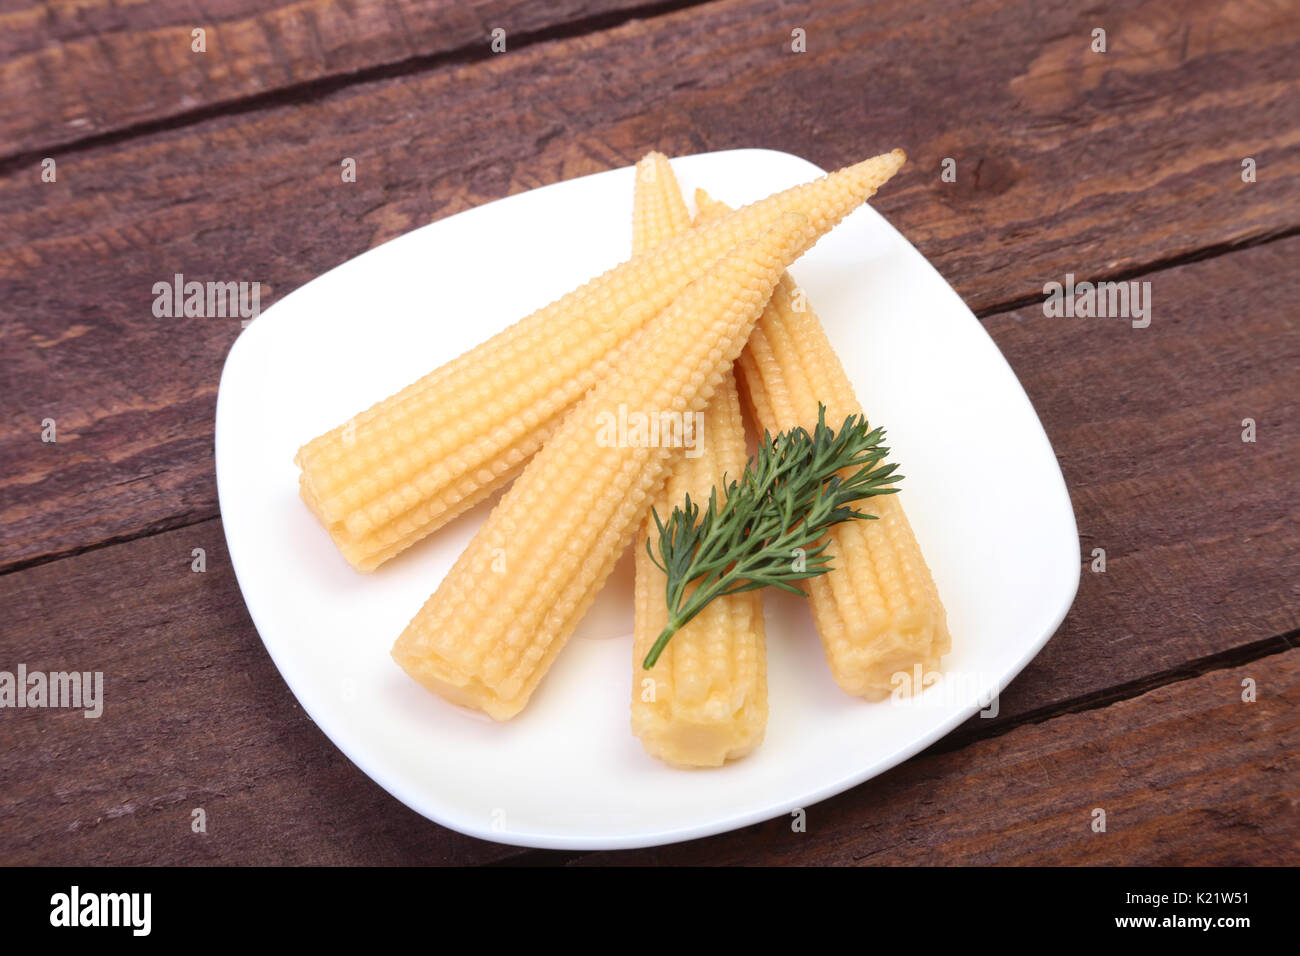 Mini Corn cob preserved on plate on wooden board - Stock Image